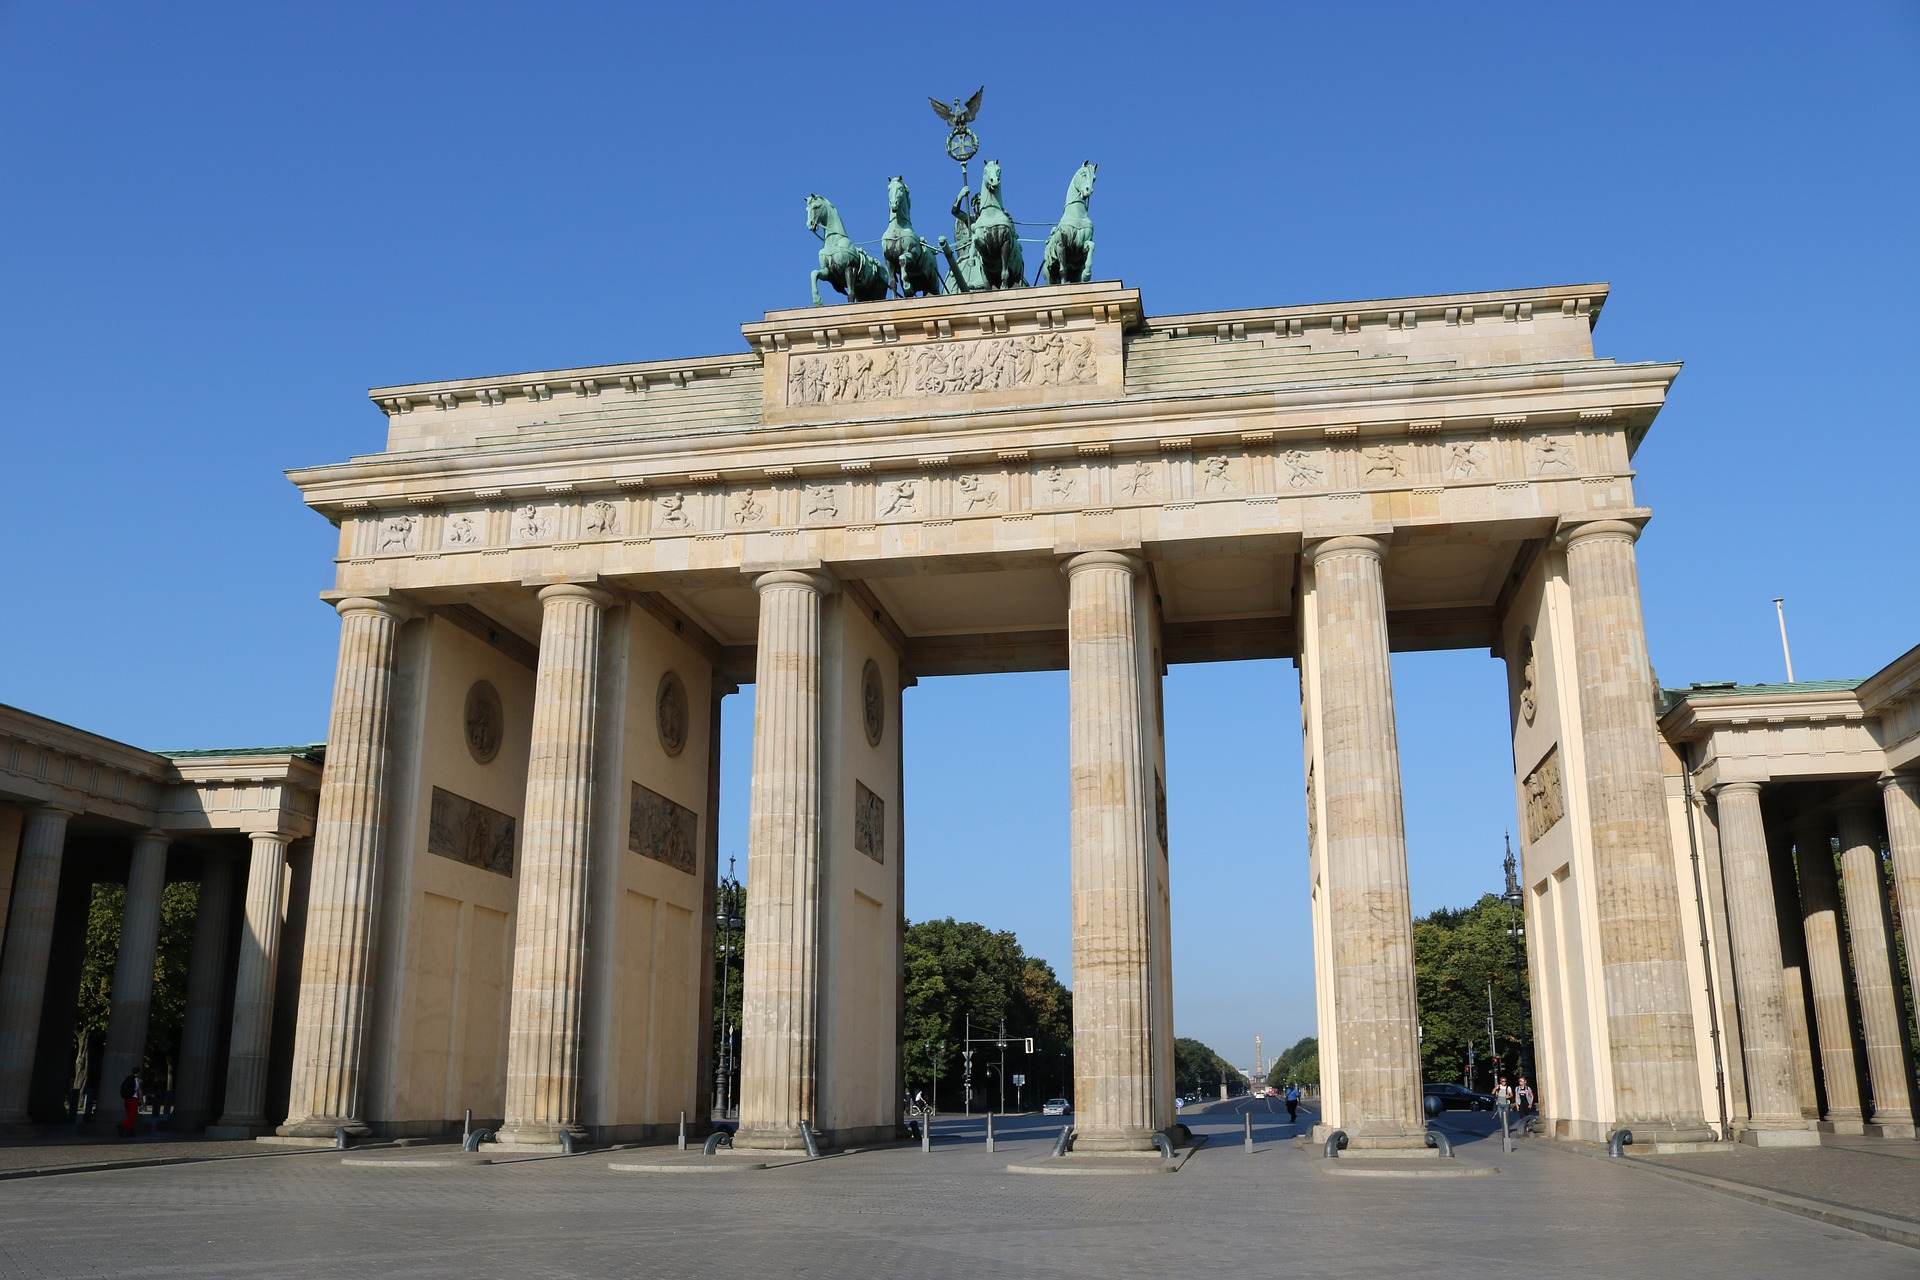 Cheap flights to Berlin